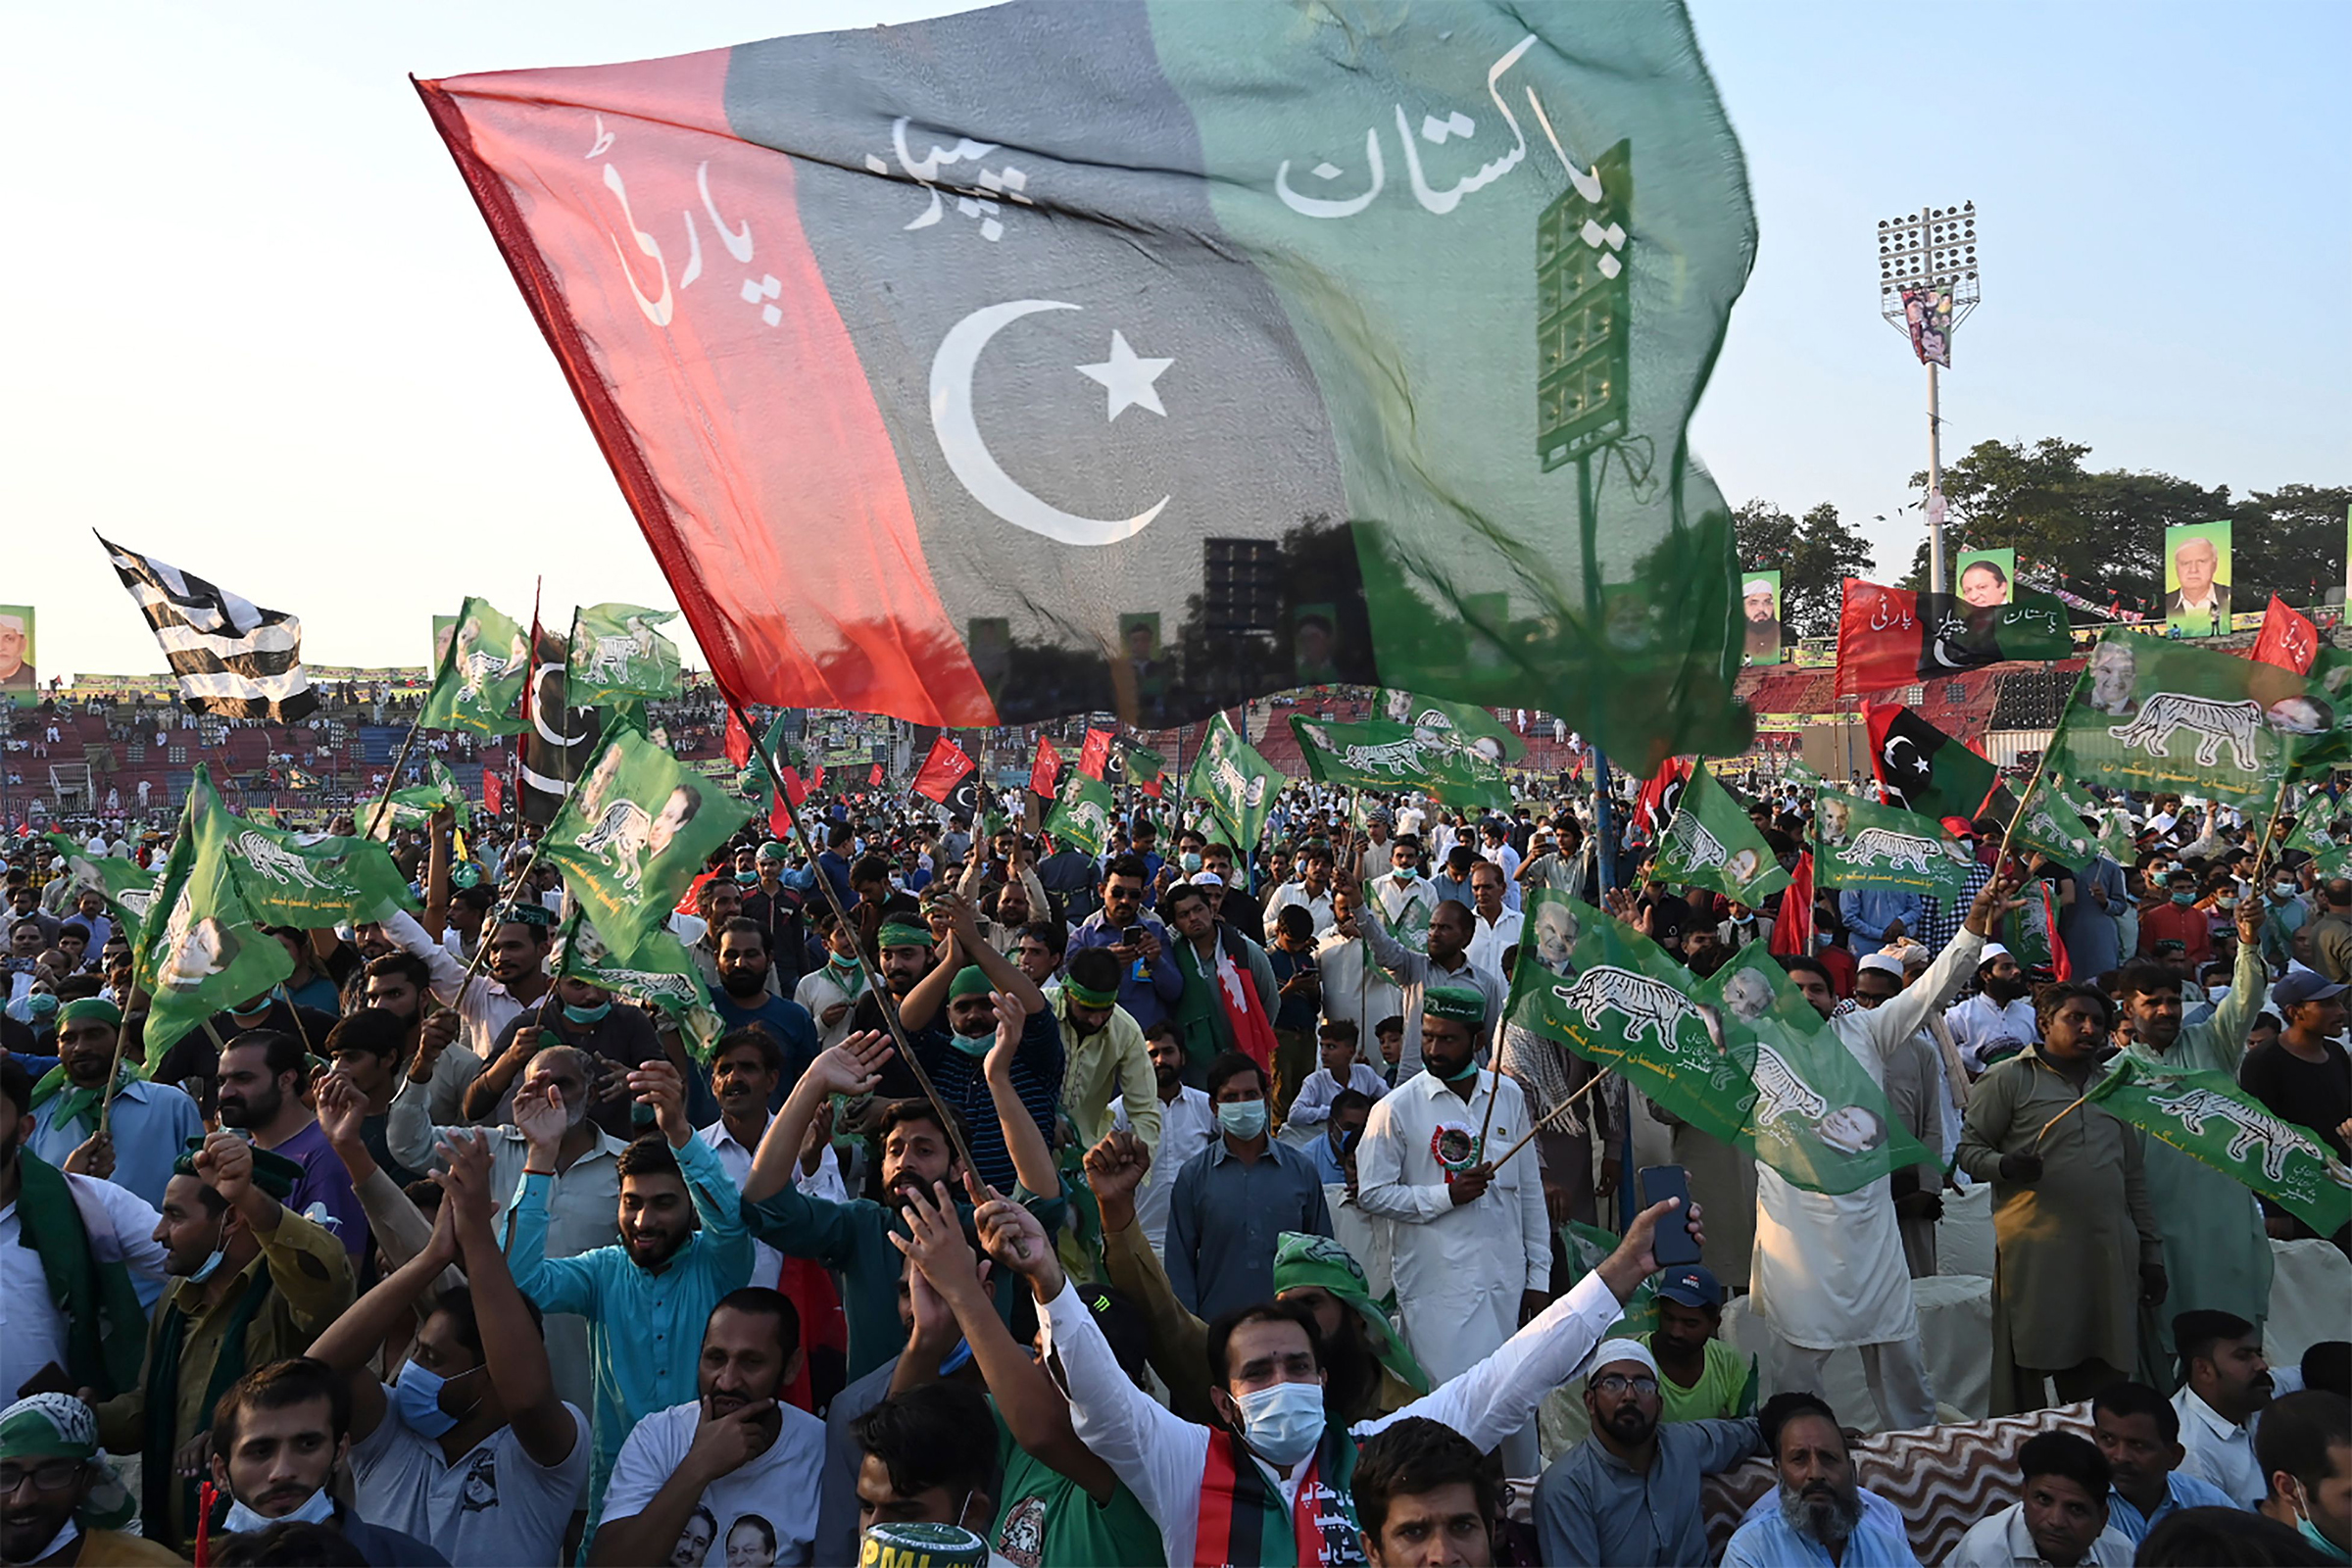 Activists of the newly-formed Pakistan Democratic Movement (PDM), an opposition alliance of 11 parties, wave parties flags during the first public rally in the eastern city of Gujranwala on Oct. 16, 2020.